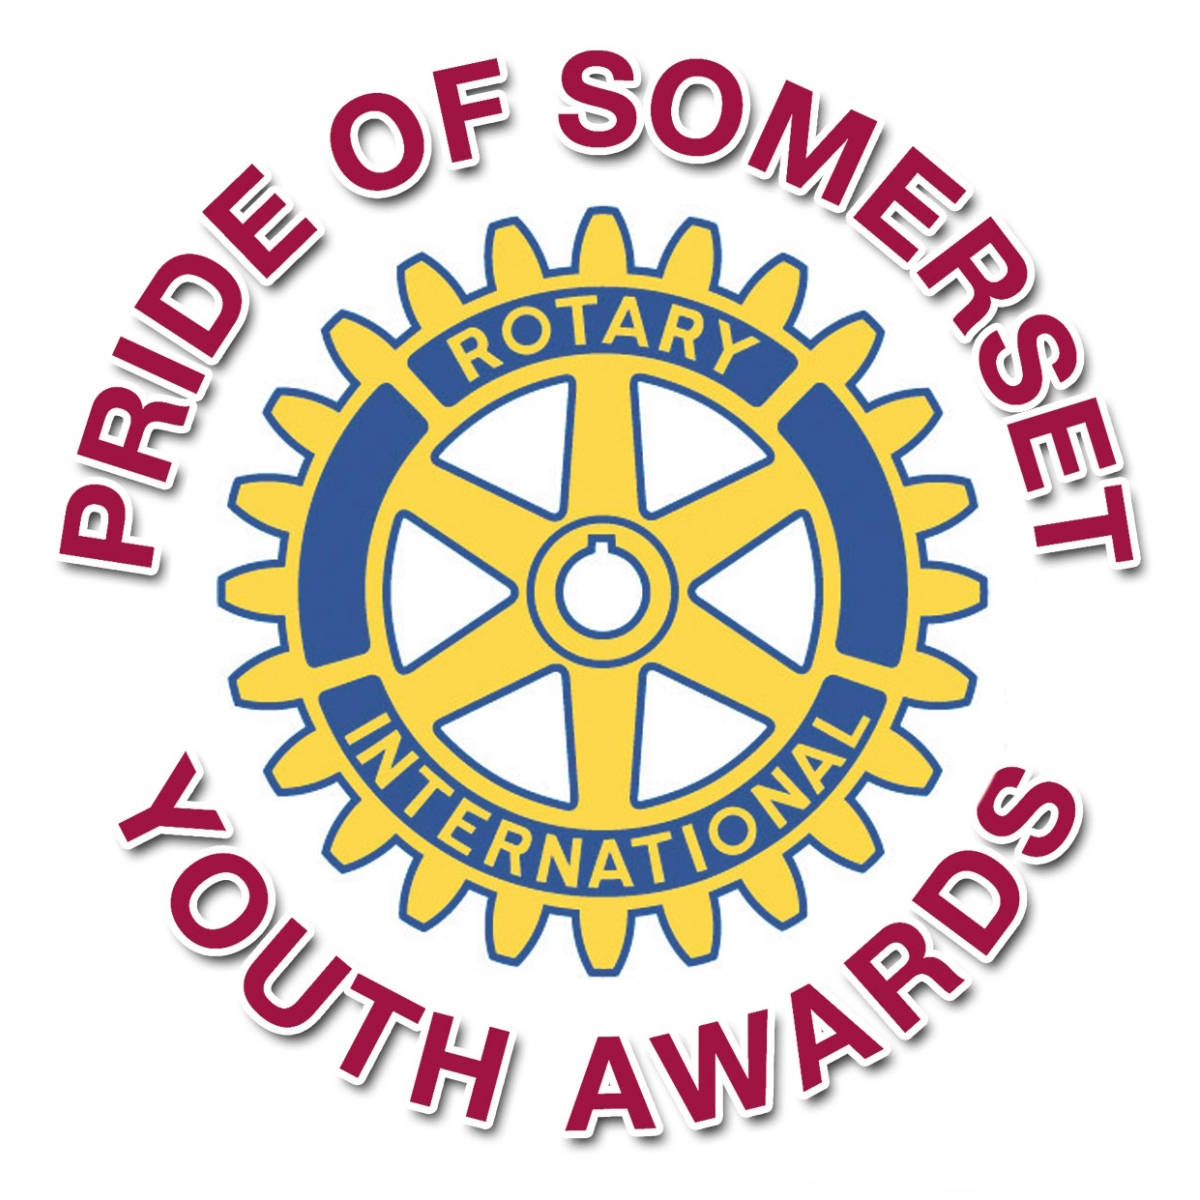 Nominations open in 2014 Pride of Somerset Youth Awards